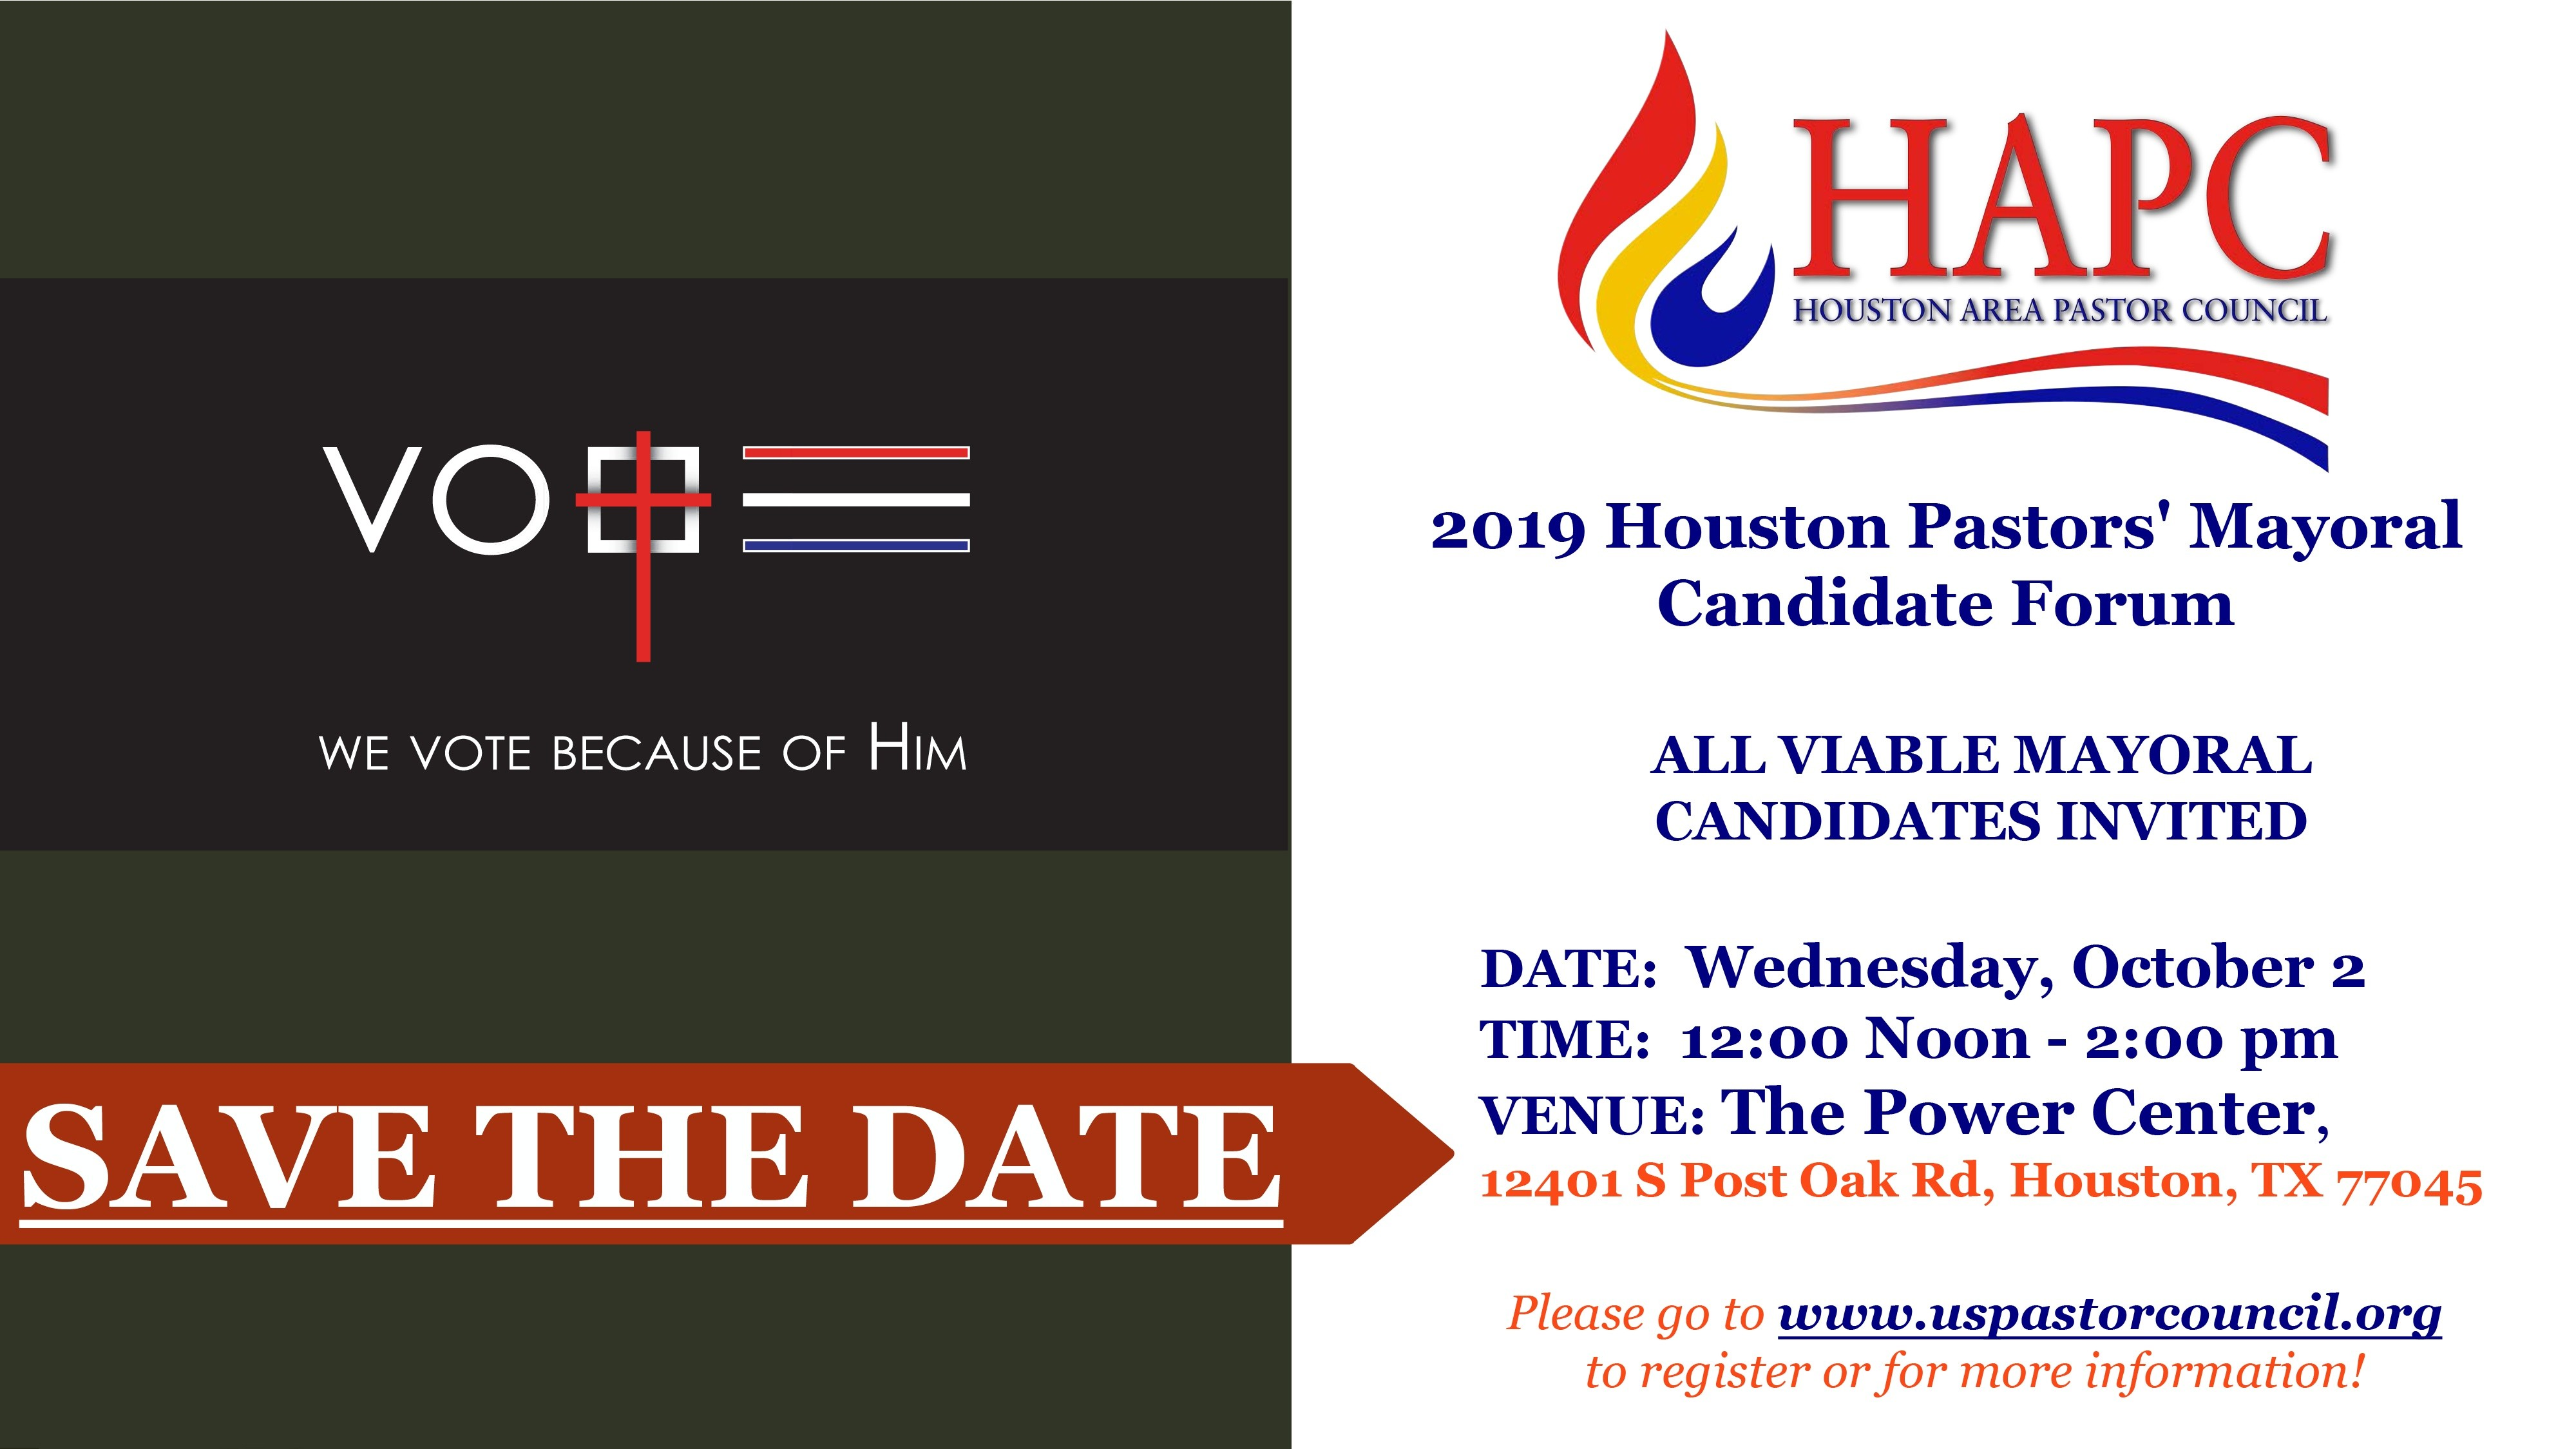 Houston Pastors' Mayoral Candidate Forum